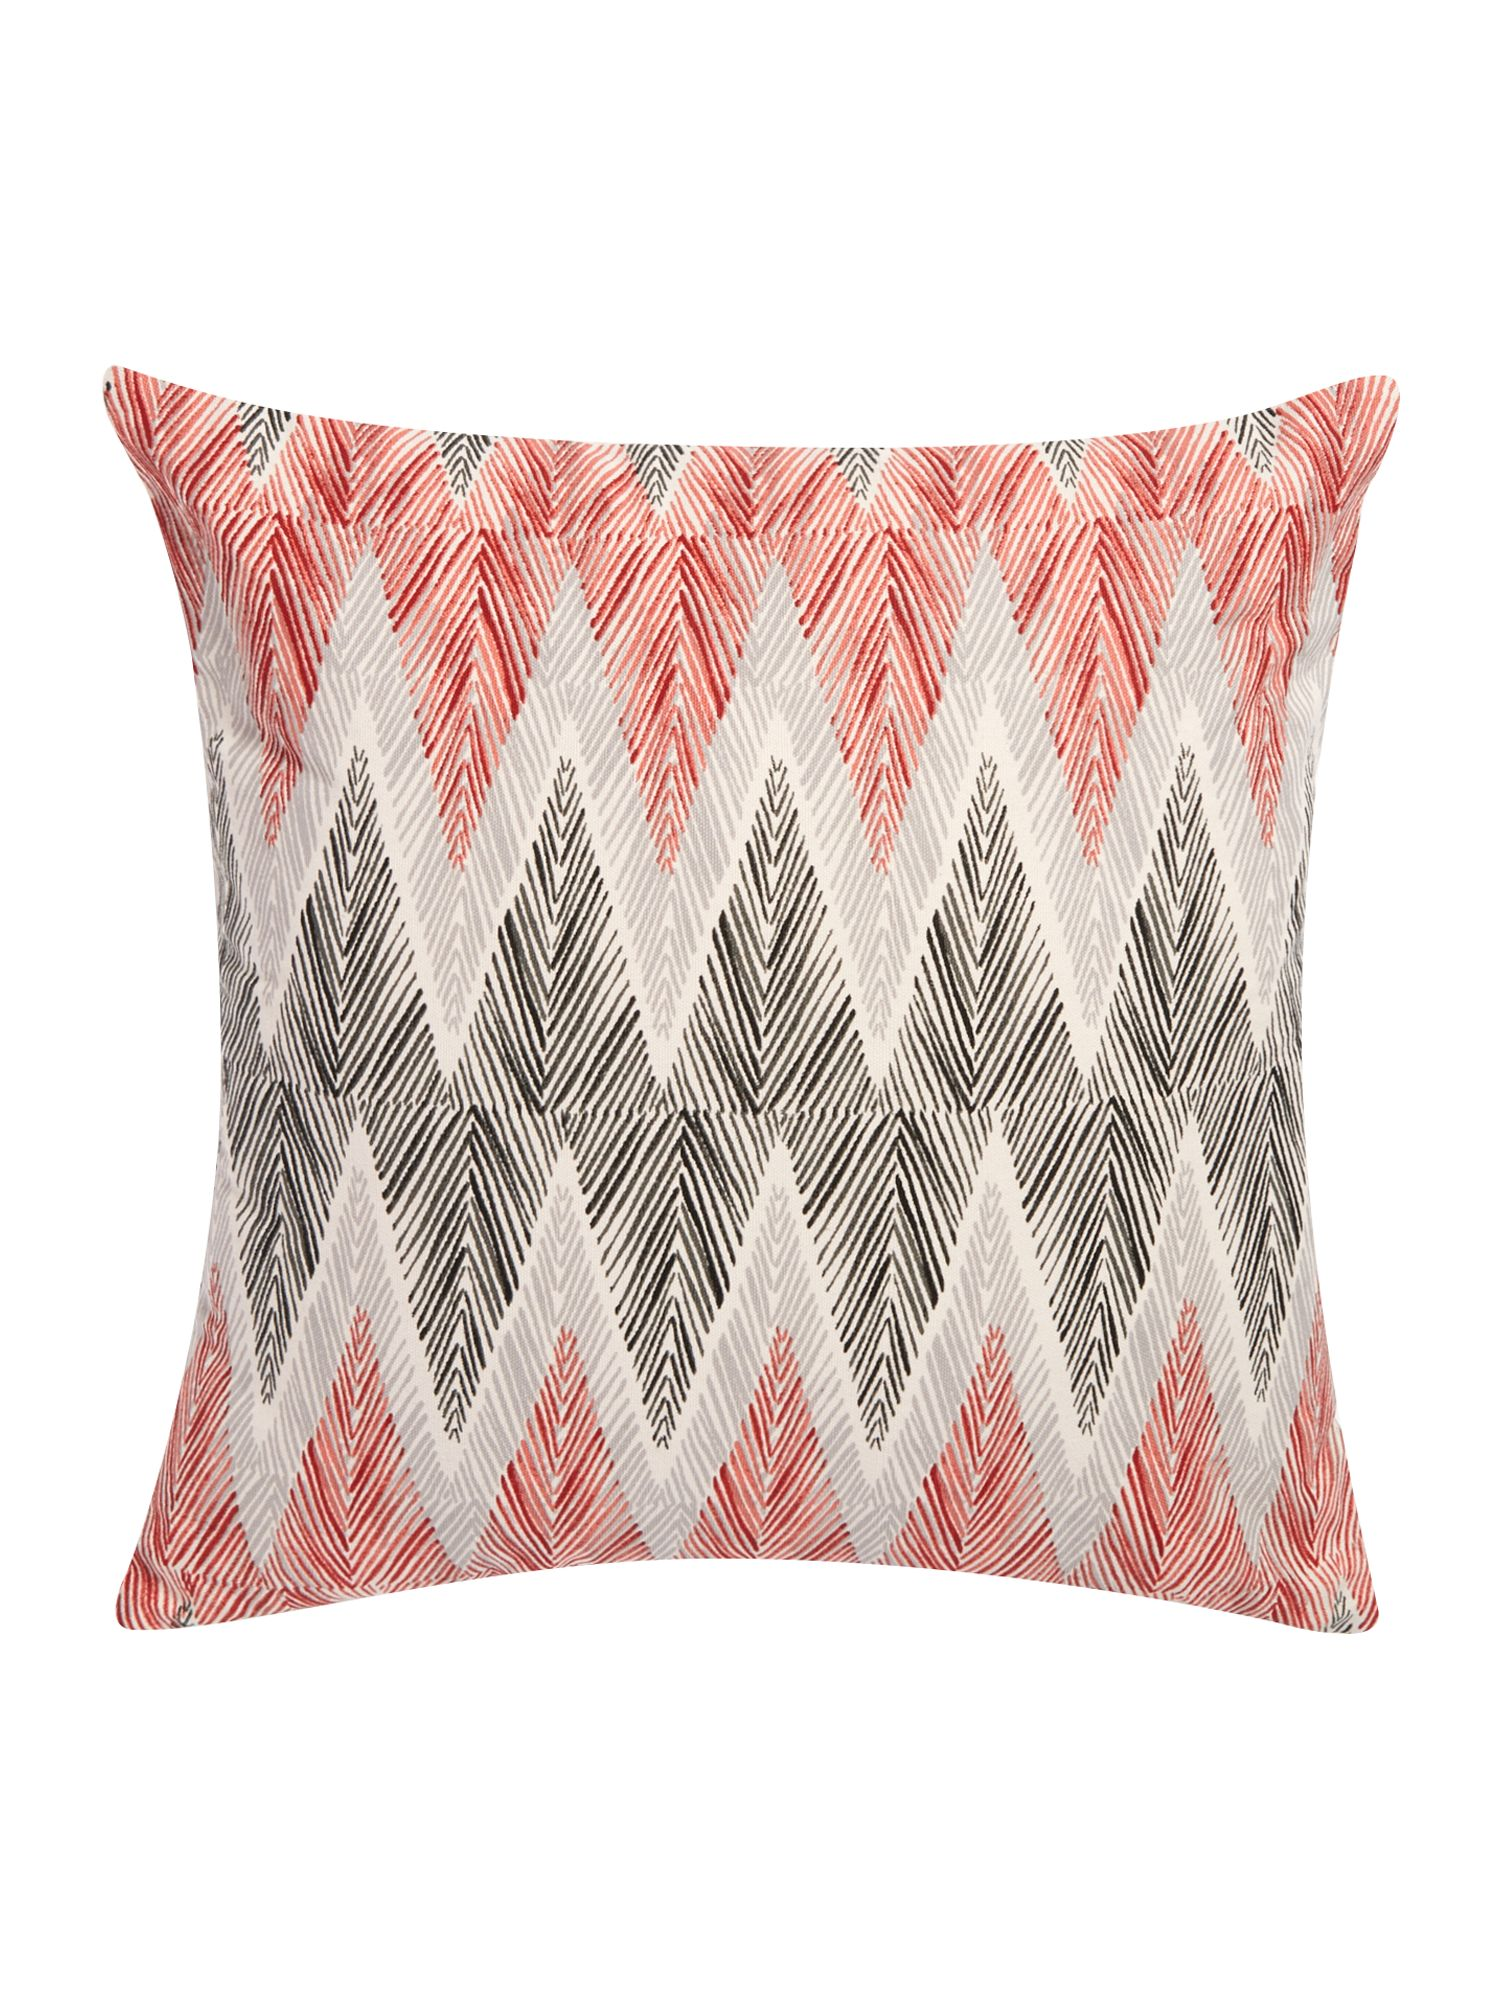 house of fraser linea sofa review gaming malaysia polyester cushions